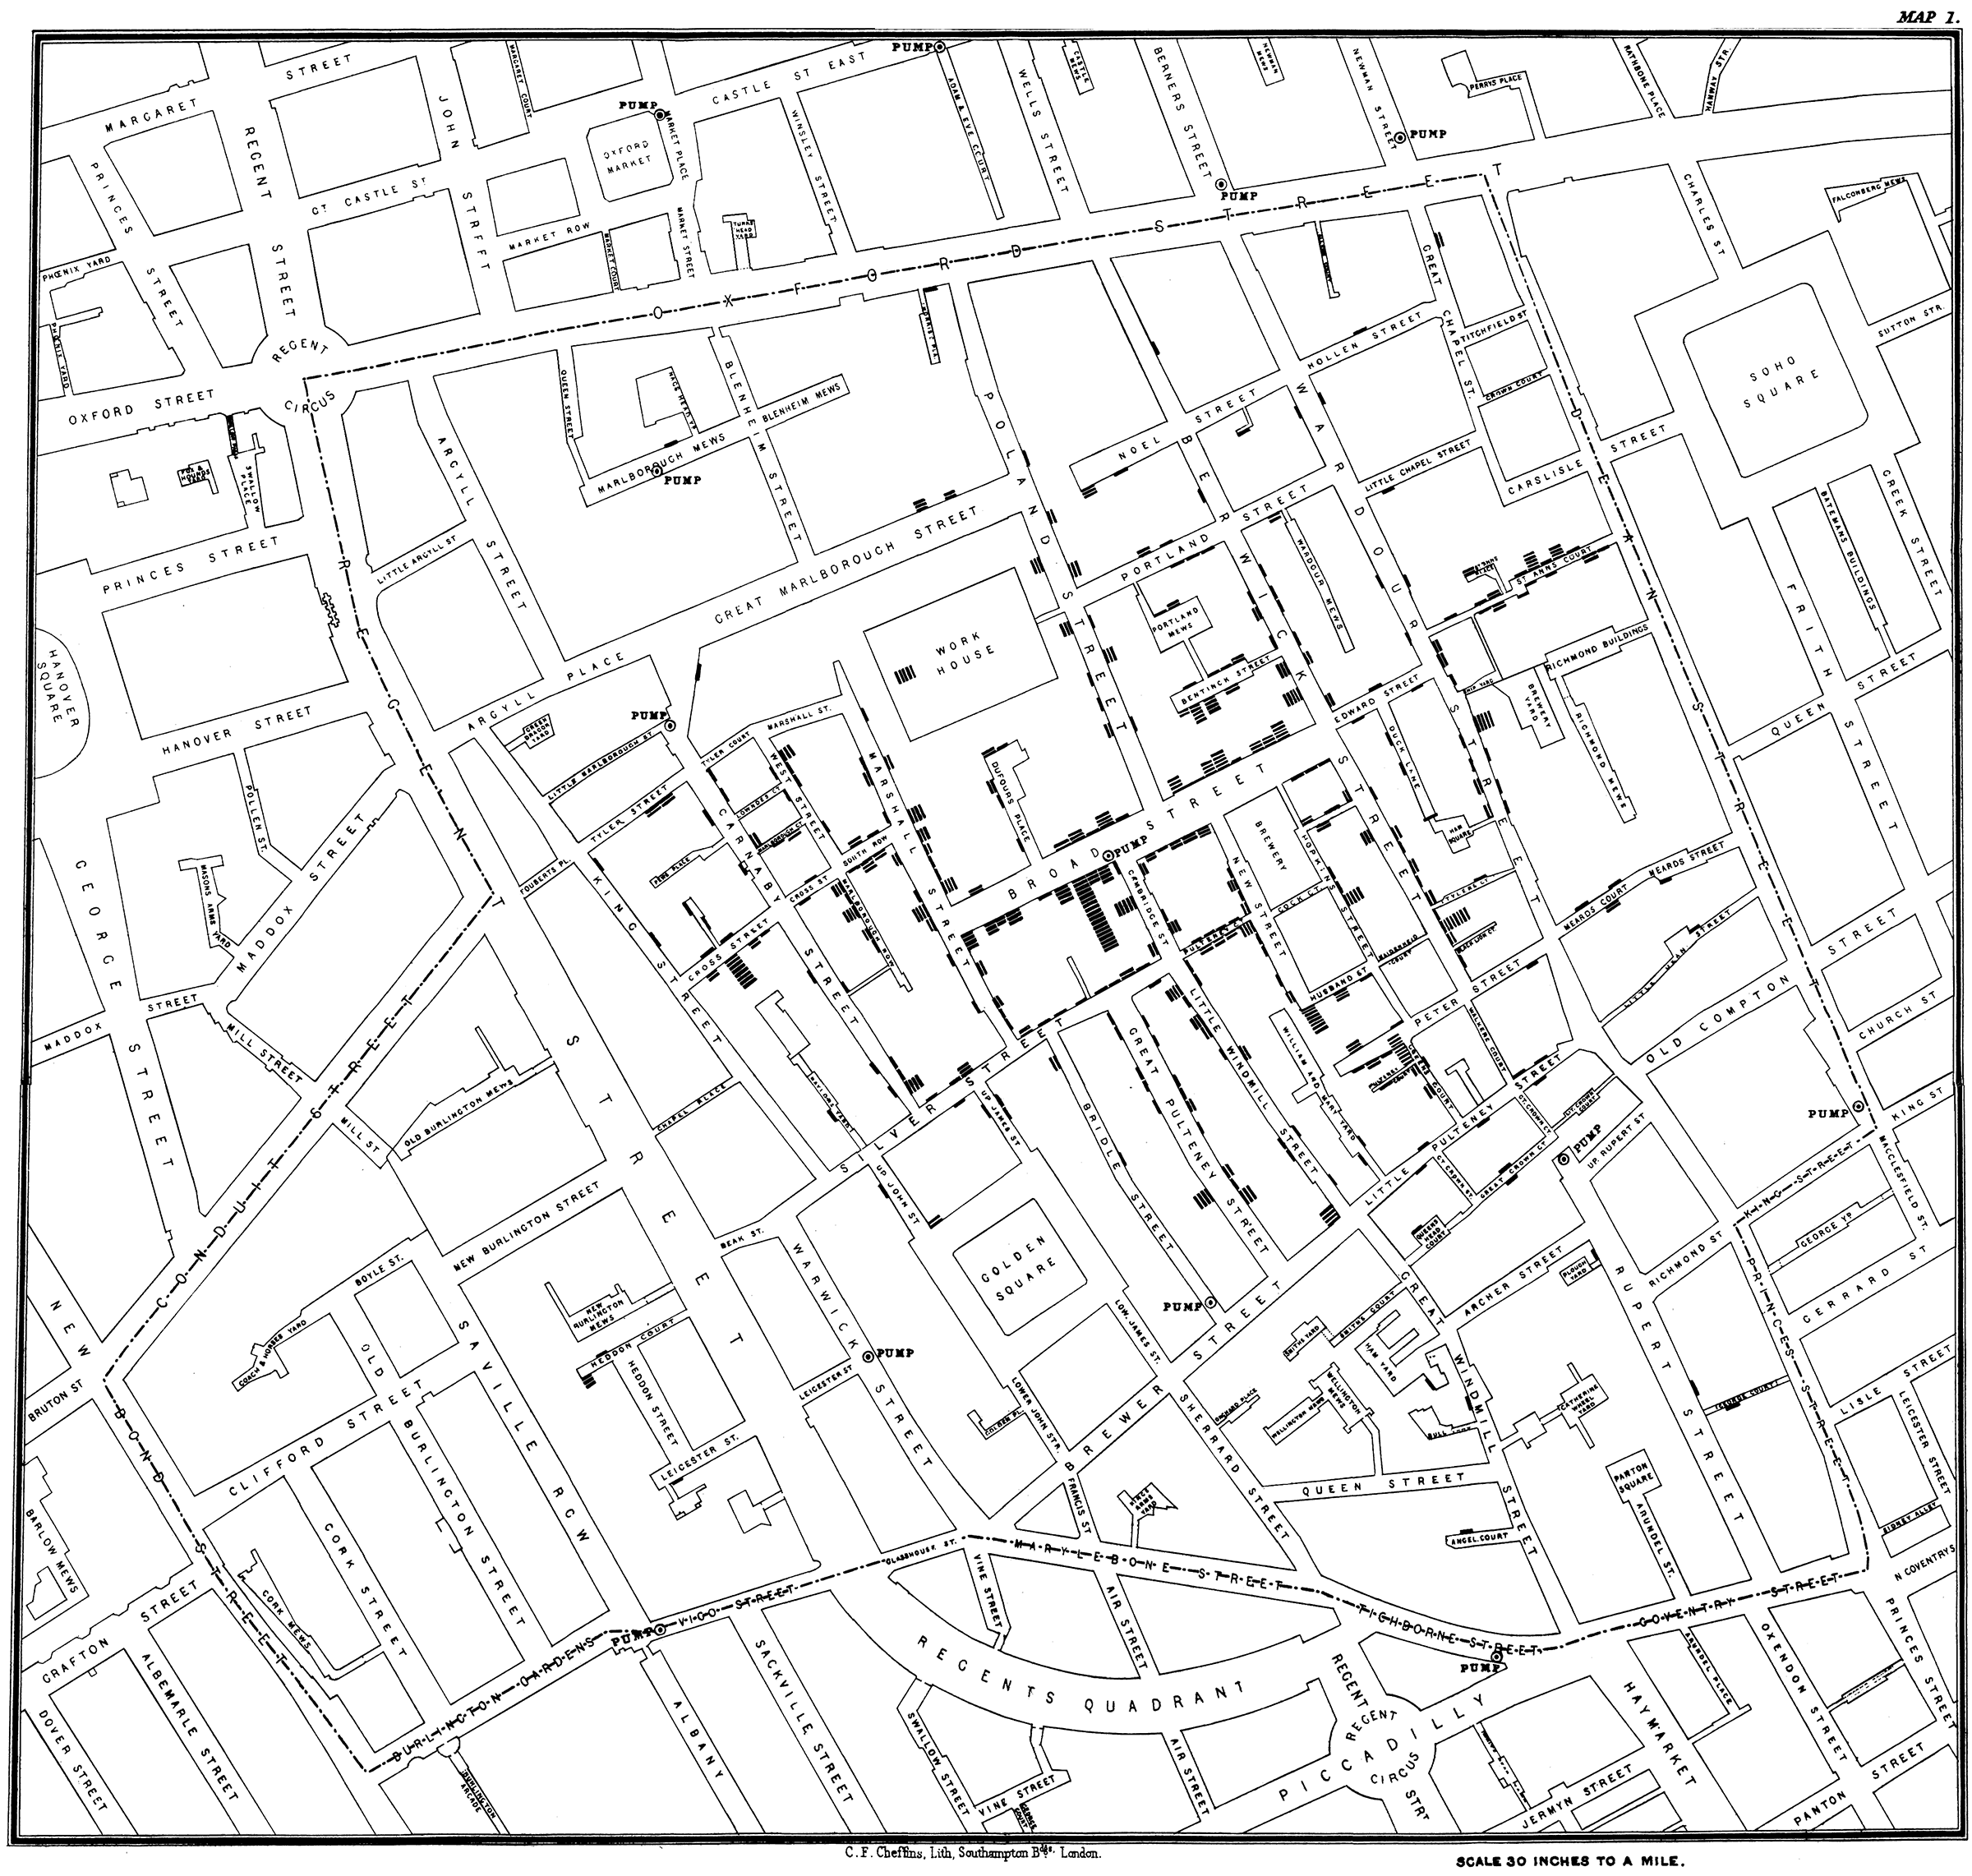 Black-and-white map of London streets with small black bars stacked perpendicular to the roads indicating locations of cholera cases